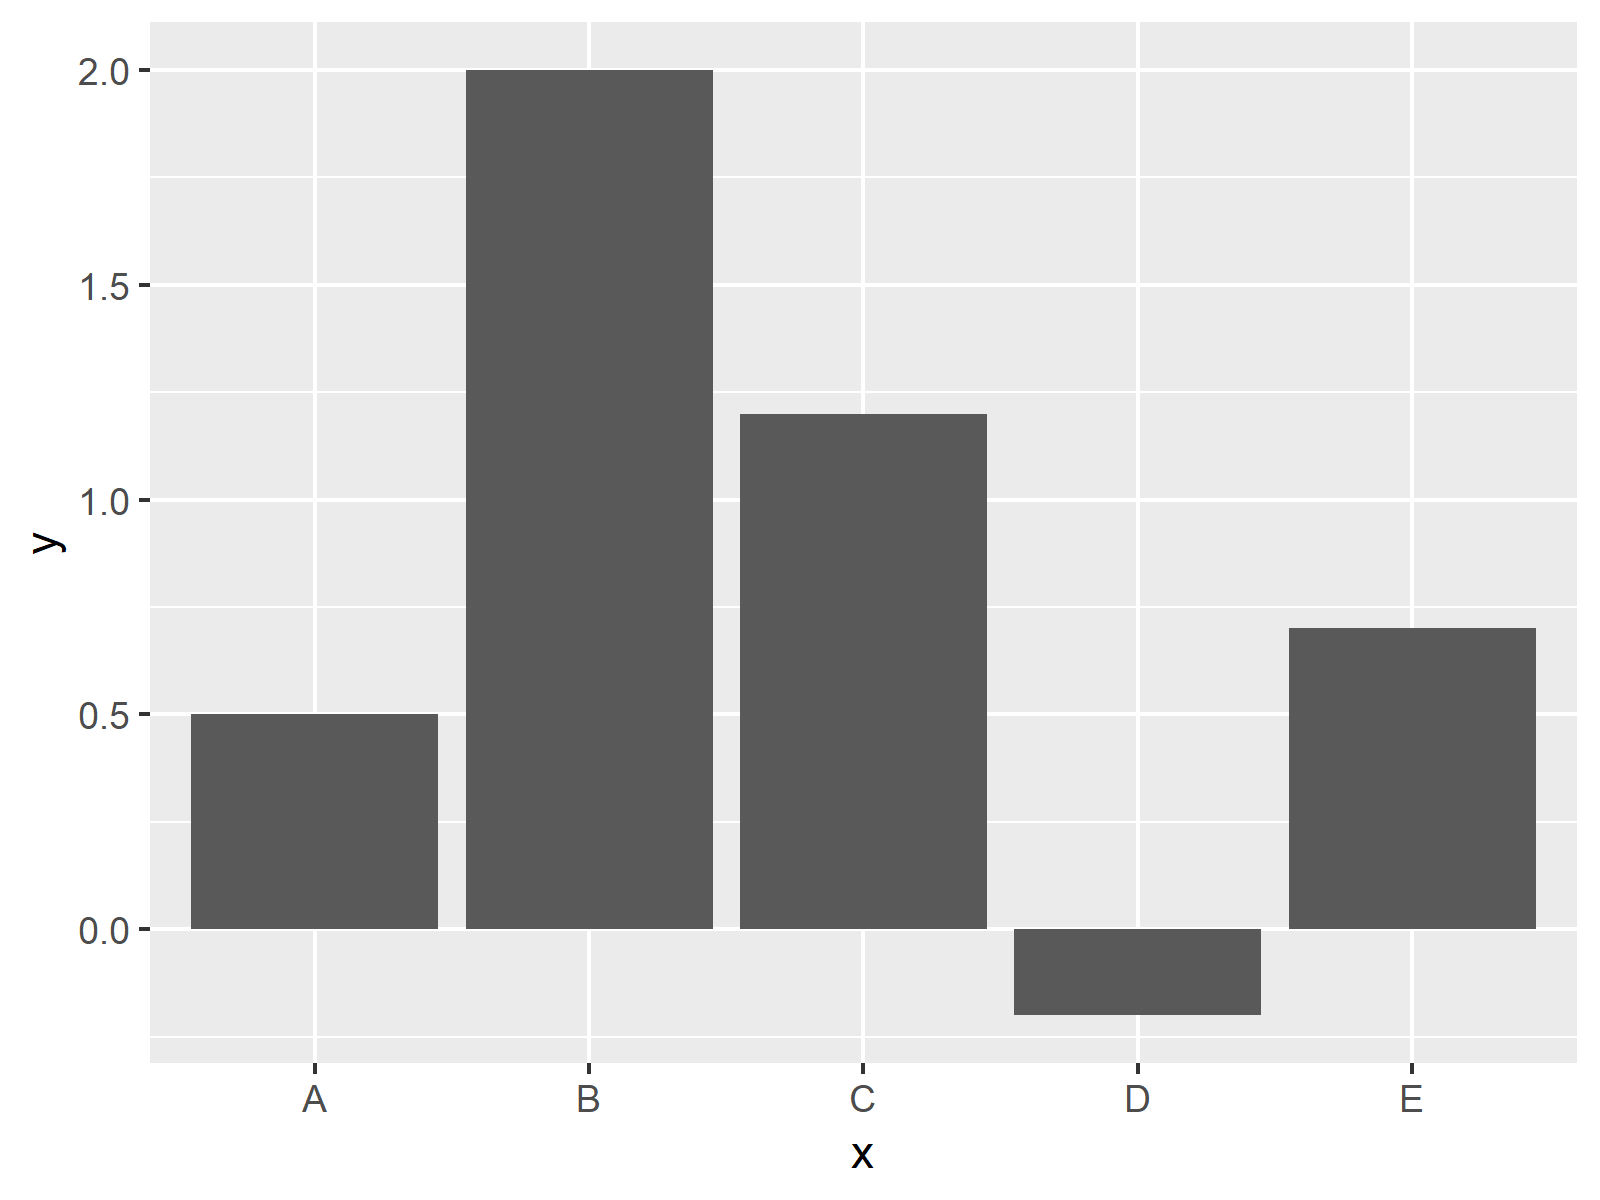 ggplot2 barchart in r